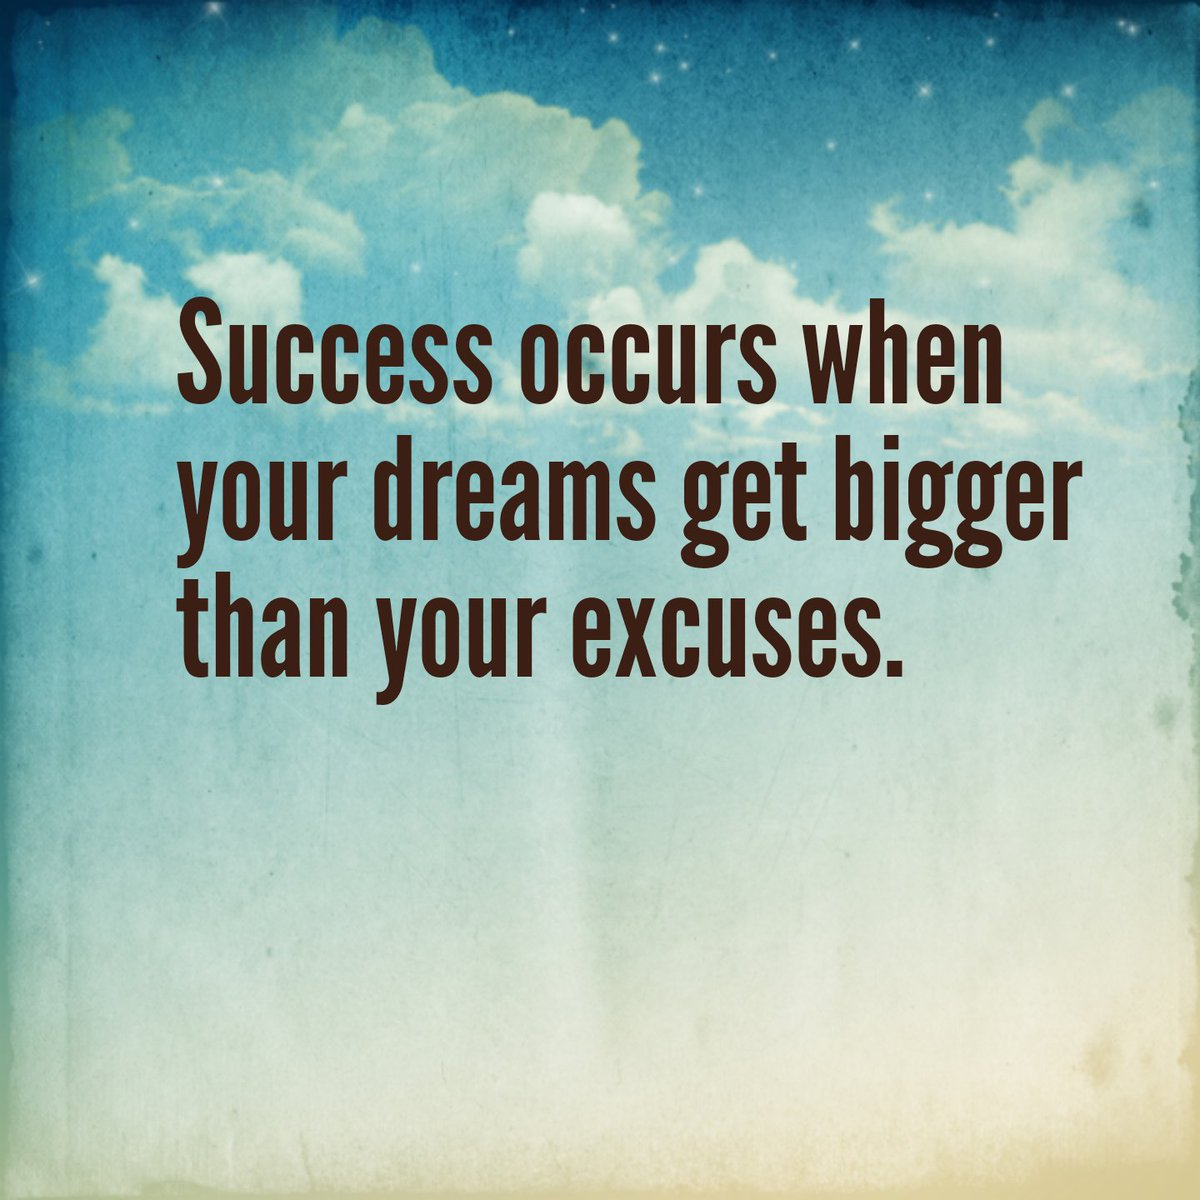 Good Life Quotes On Twitter Success Occurs When Your Dreams Get